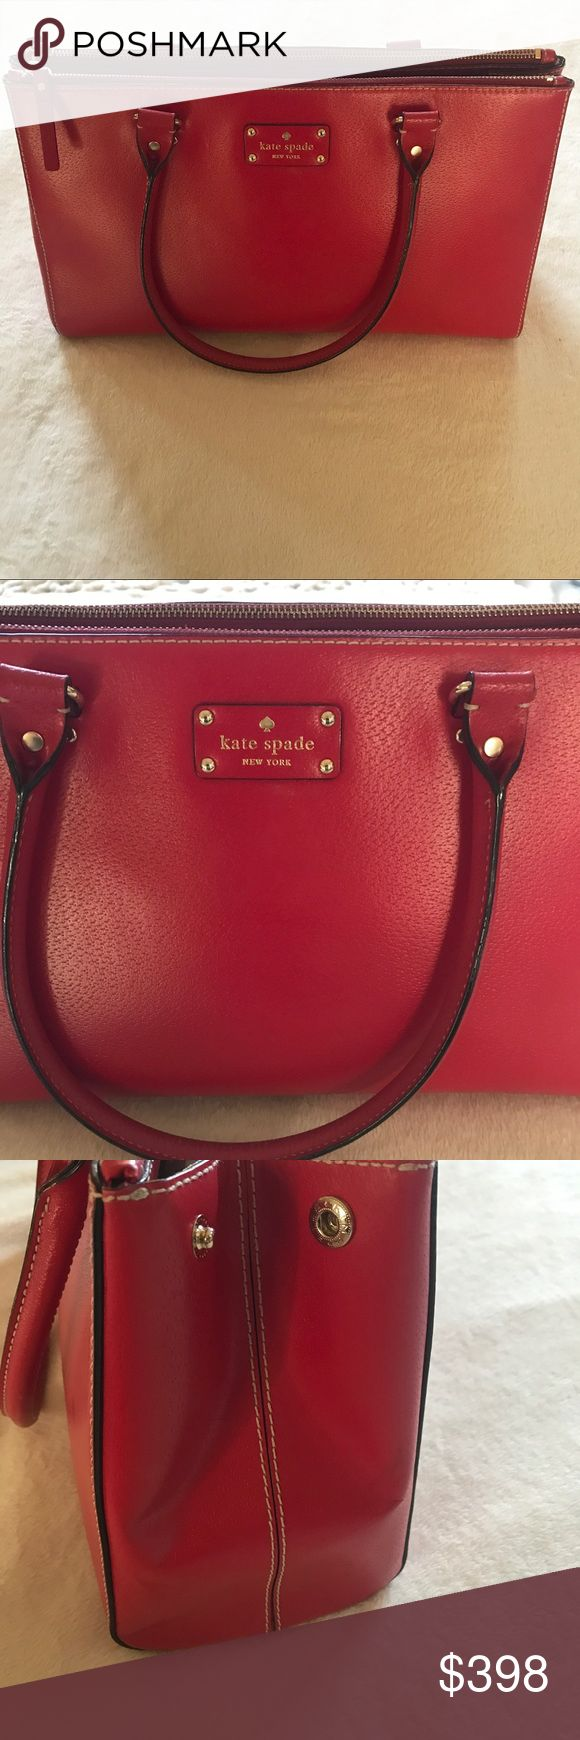 """Kate Spade ♠️ Wellesley Martine Red Leather Bag Like Brand New. Great Condition. Red Boar Skin embossed Leather with Gold Tone Hardware with KS nameplate on front. Two outer zippered compartments, center open compartment with magnetic closure. Interior features two open slip pockets and one zippered pocket. Dual handles with a drop of about 7.5"""".! kate spade Bags"""